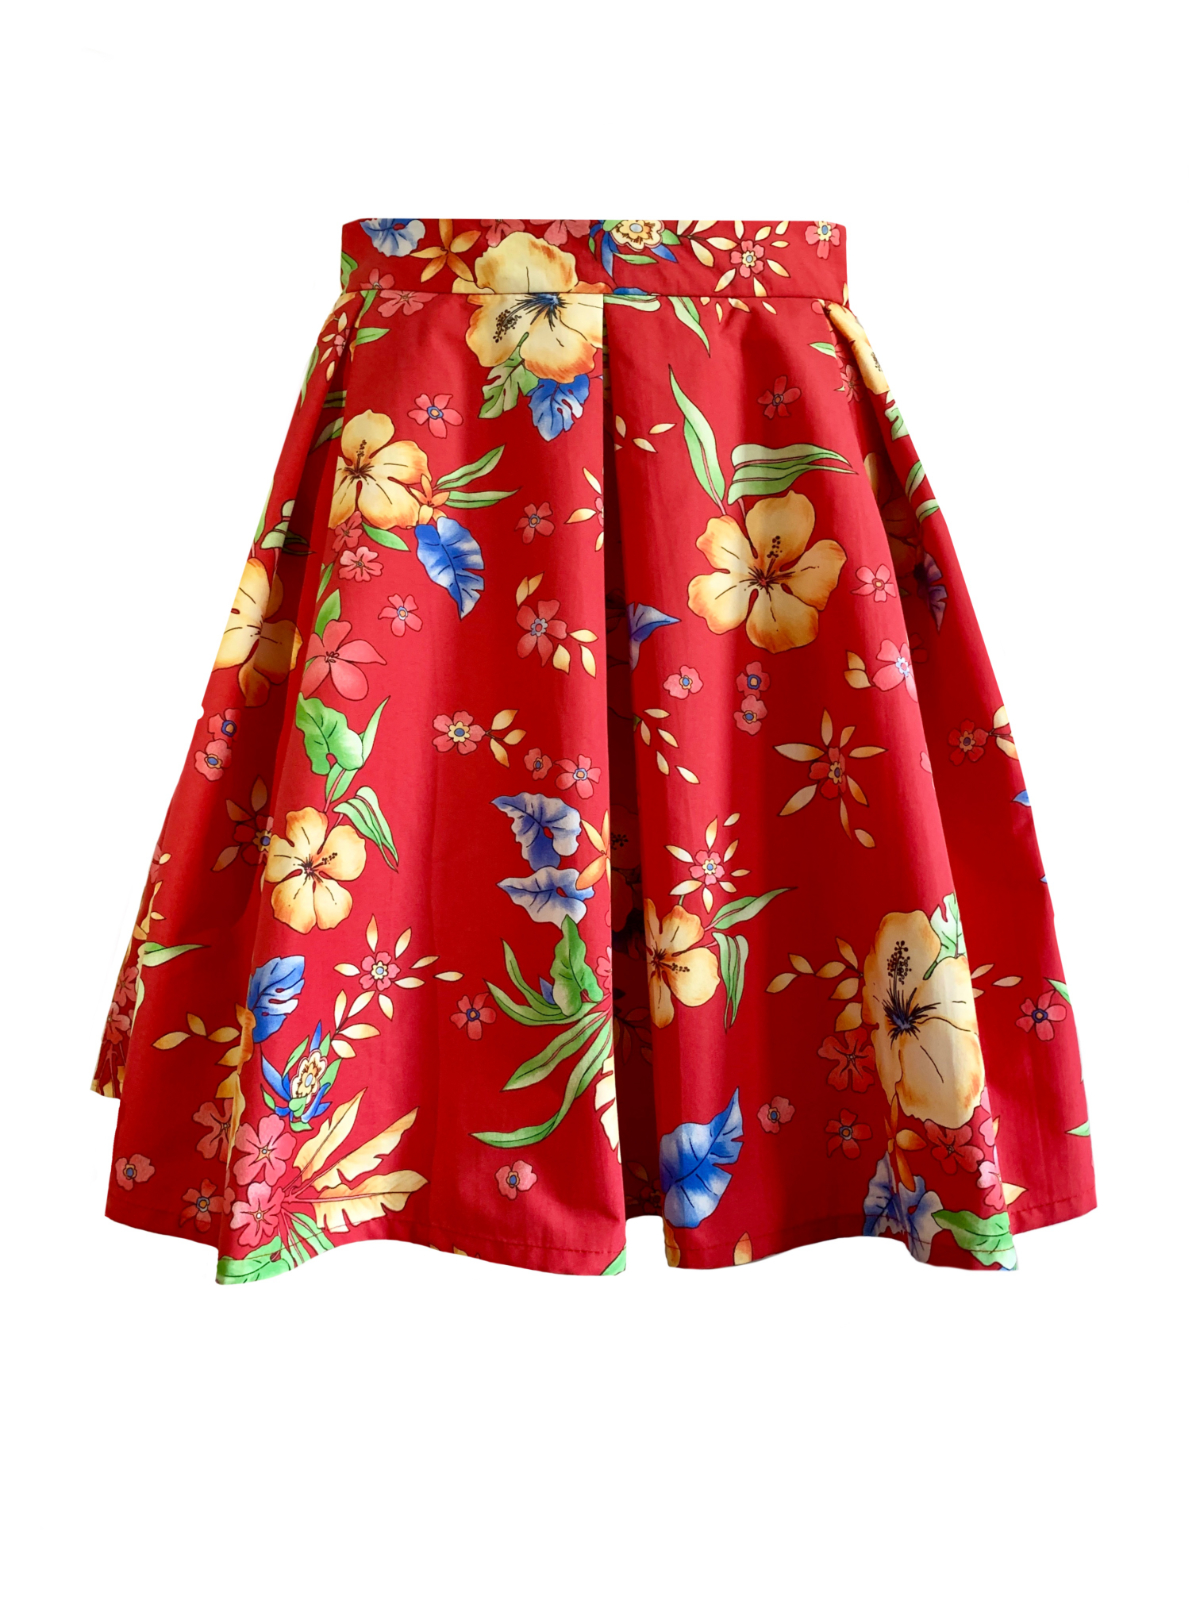 SKIRT SIMI RED FLOWER 2